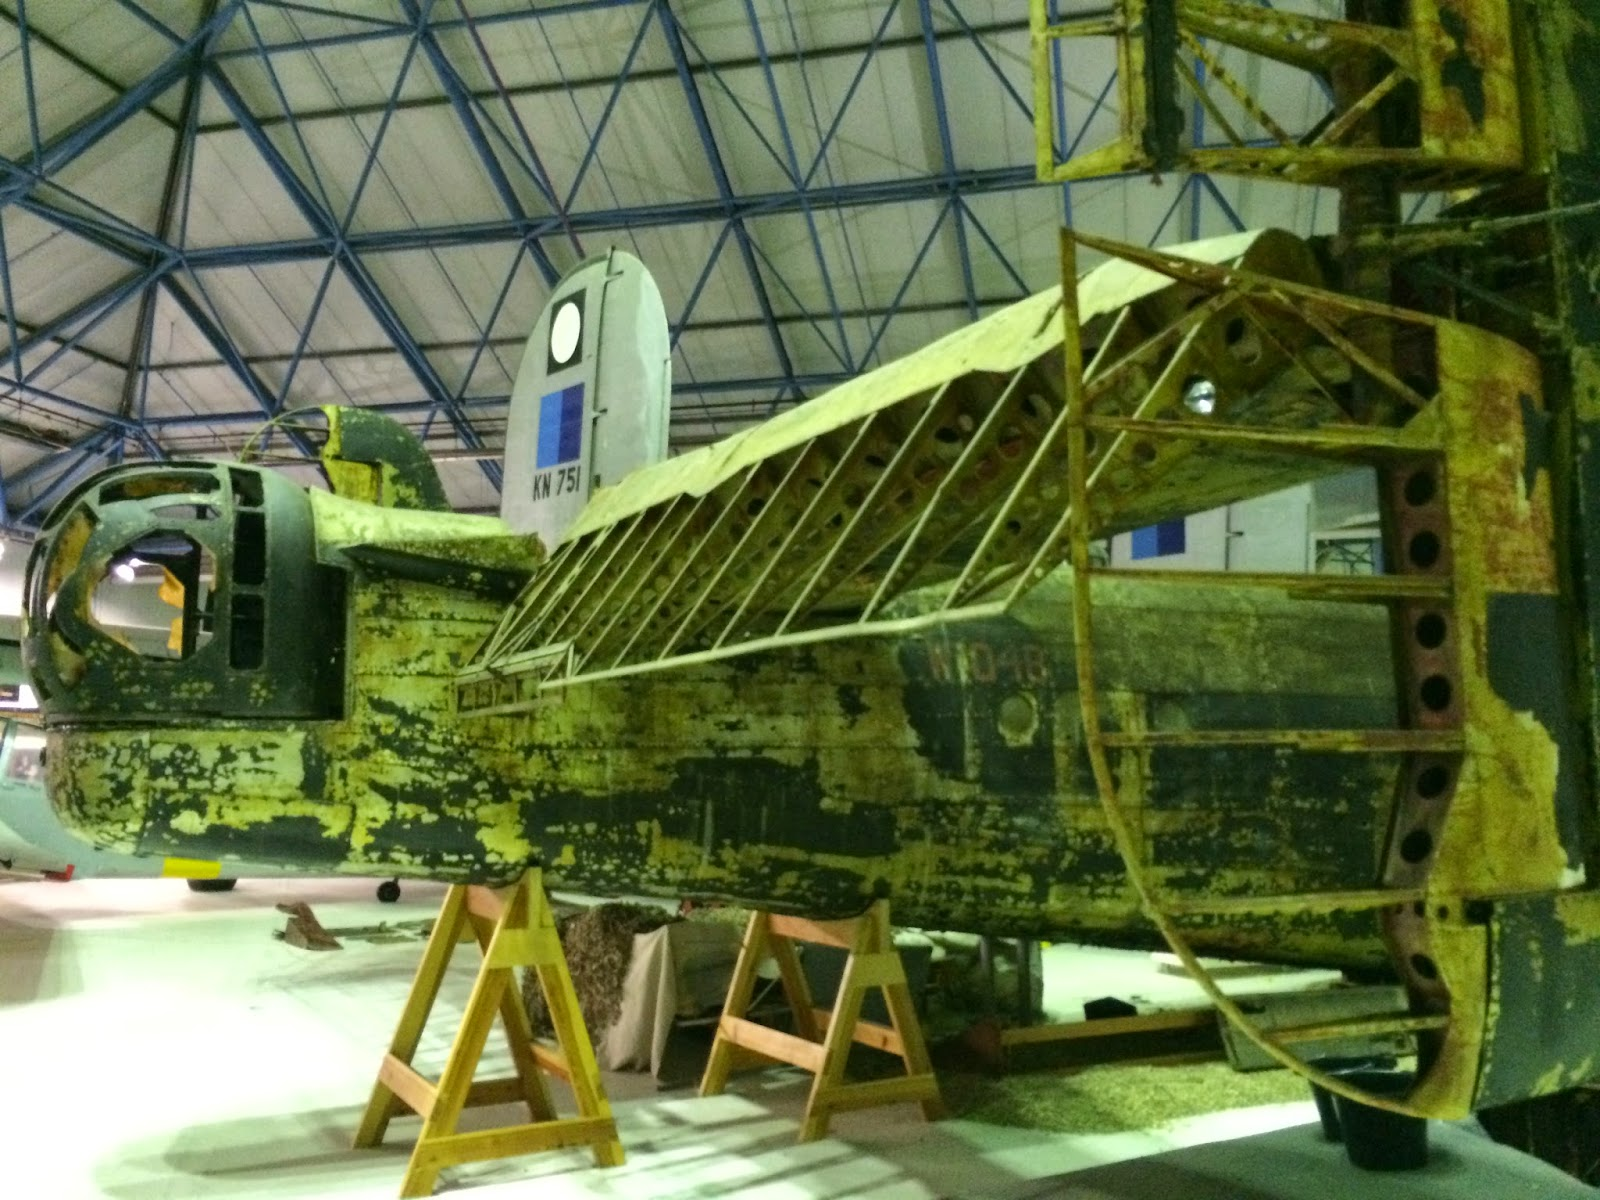 HANDLEY-PAGE HALIFAX RESTORATION | Rich and Greg's Airplane Page on aircraft main gear, aircraft rudder pedals, aircraft hinge, aircraft bolt, aircraft engine, aircraft landing skids, aircraft washer, aircraft bell crank,